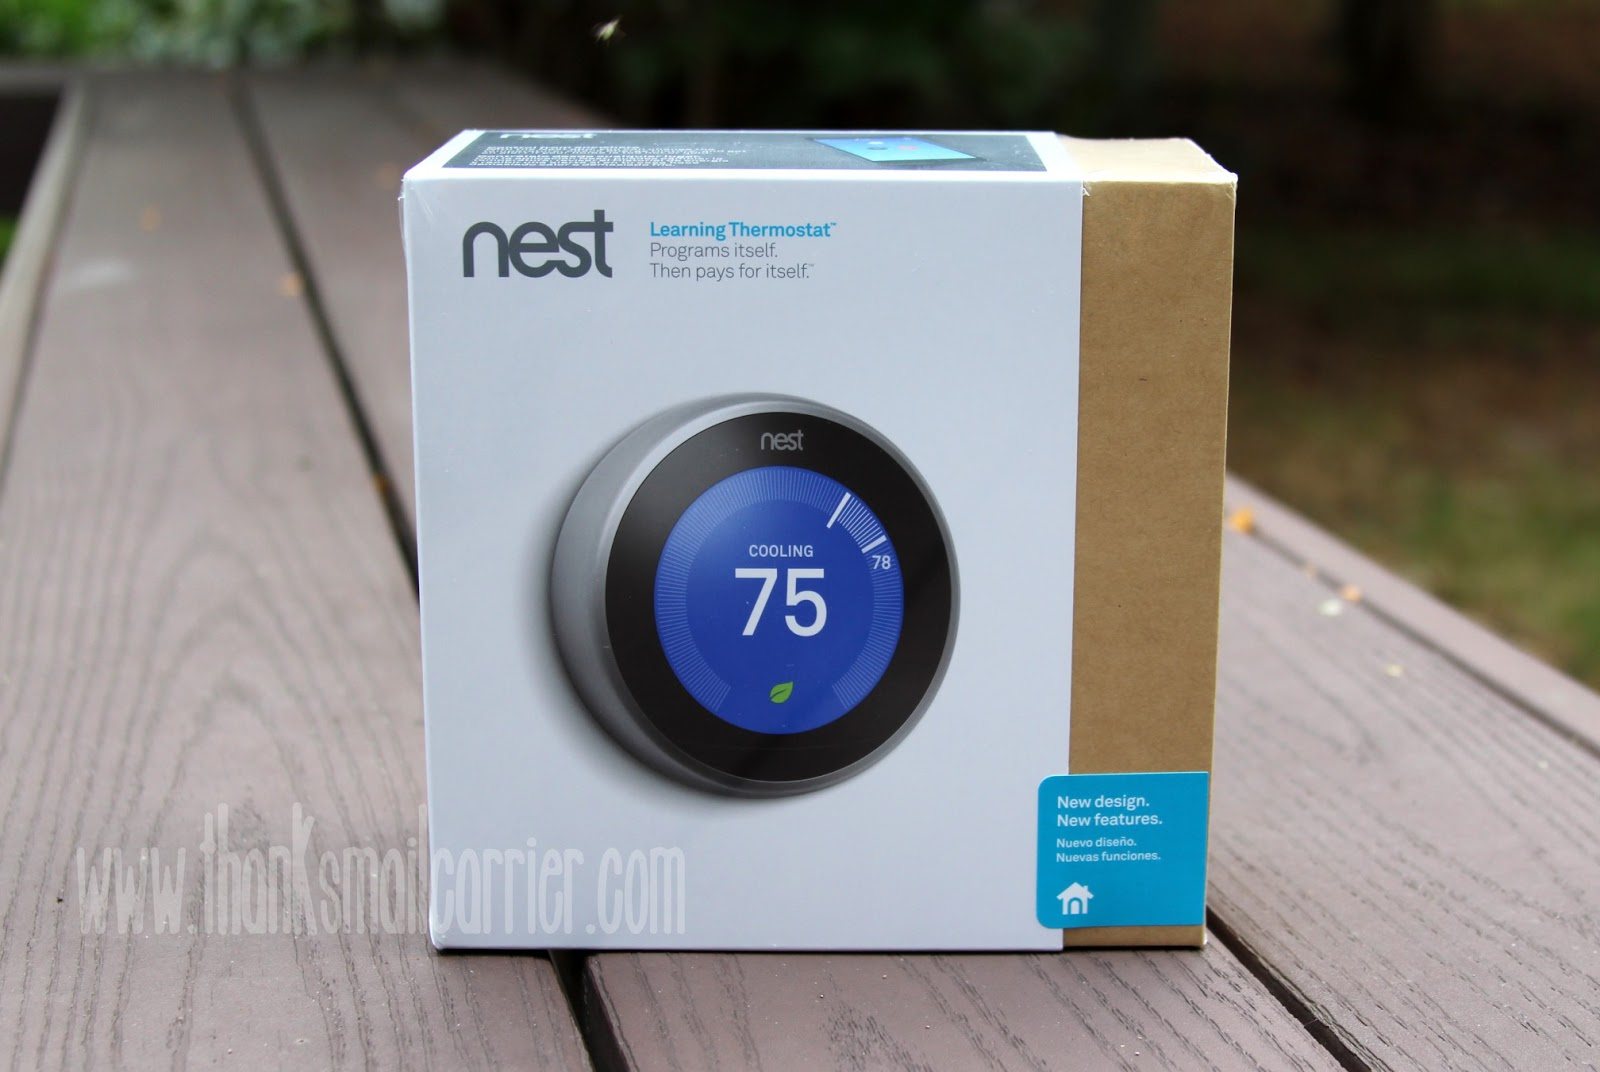 nest 3rd homekit treadmill motor wiring diagram thermostat learning review